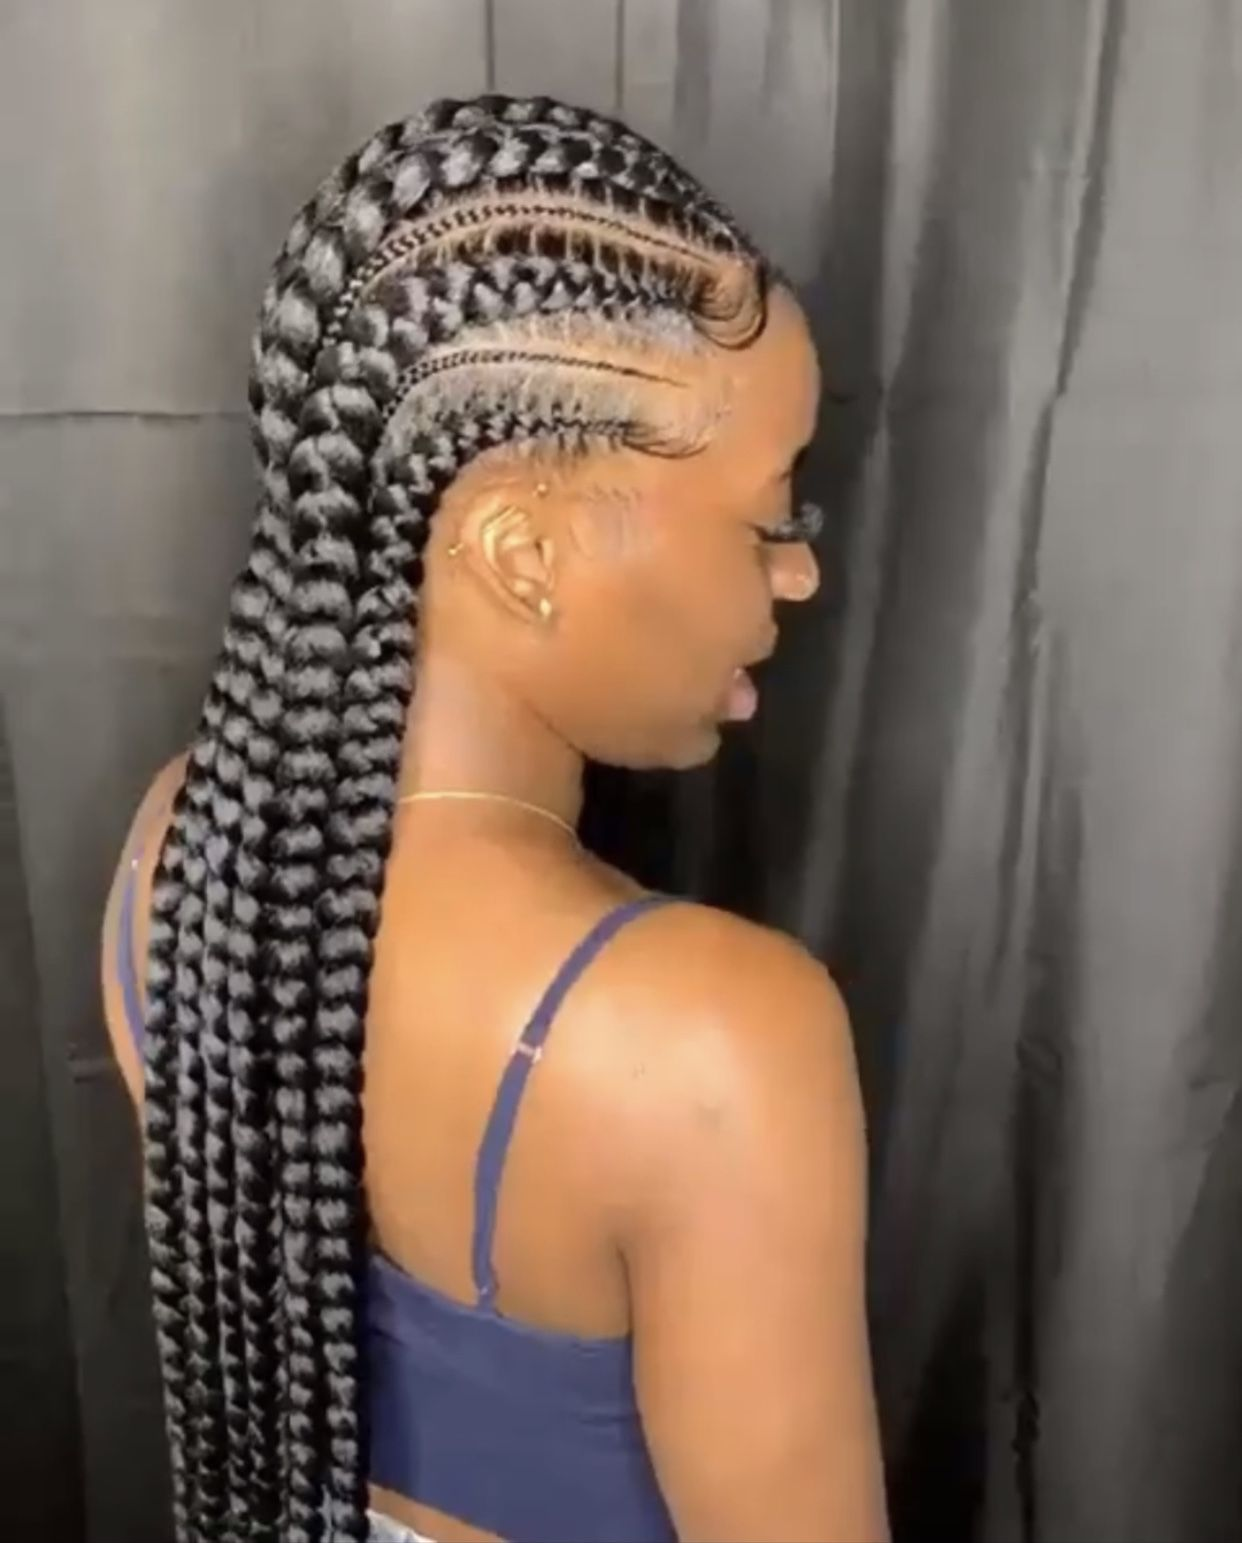 9 Engaging Simple Ideas: Women Afro Hairstyles Coiffures women hairstyles party.Women Hairstyles Red bob cut hairstyles fashion styles.Women Hairstyles Long Pony Tails.. # Braids afro glasses 12+ Captivating Messy Hairstyles Bridesmaid Ideas # Braids afro ponytail